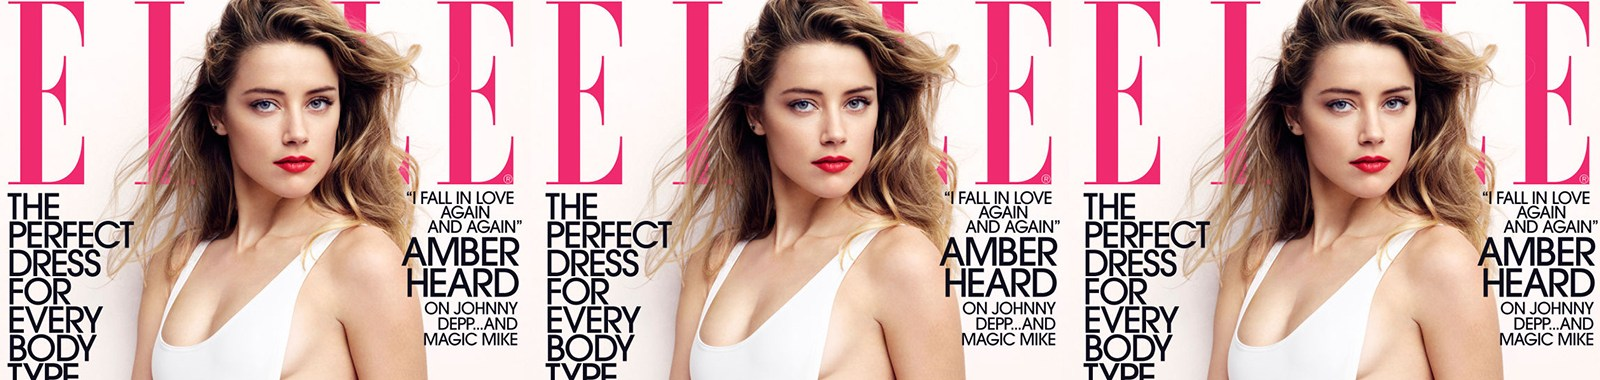 gallery-1433784184-elle-july-15-amber-heard-cover_eye